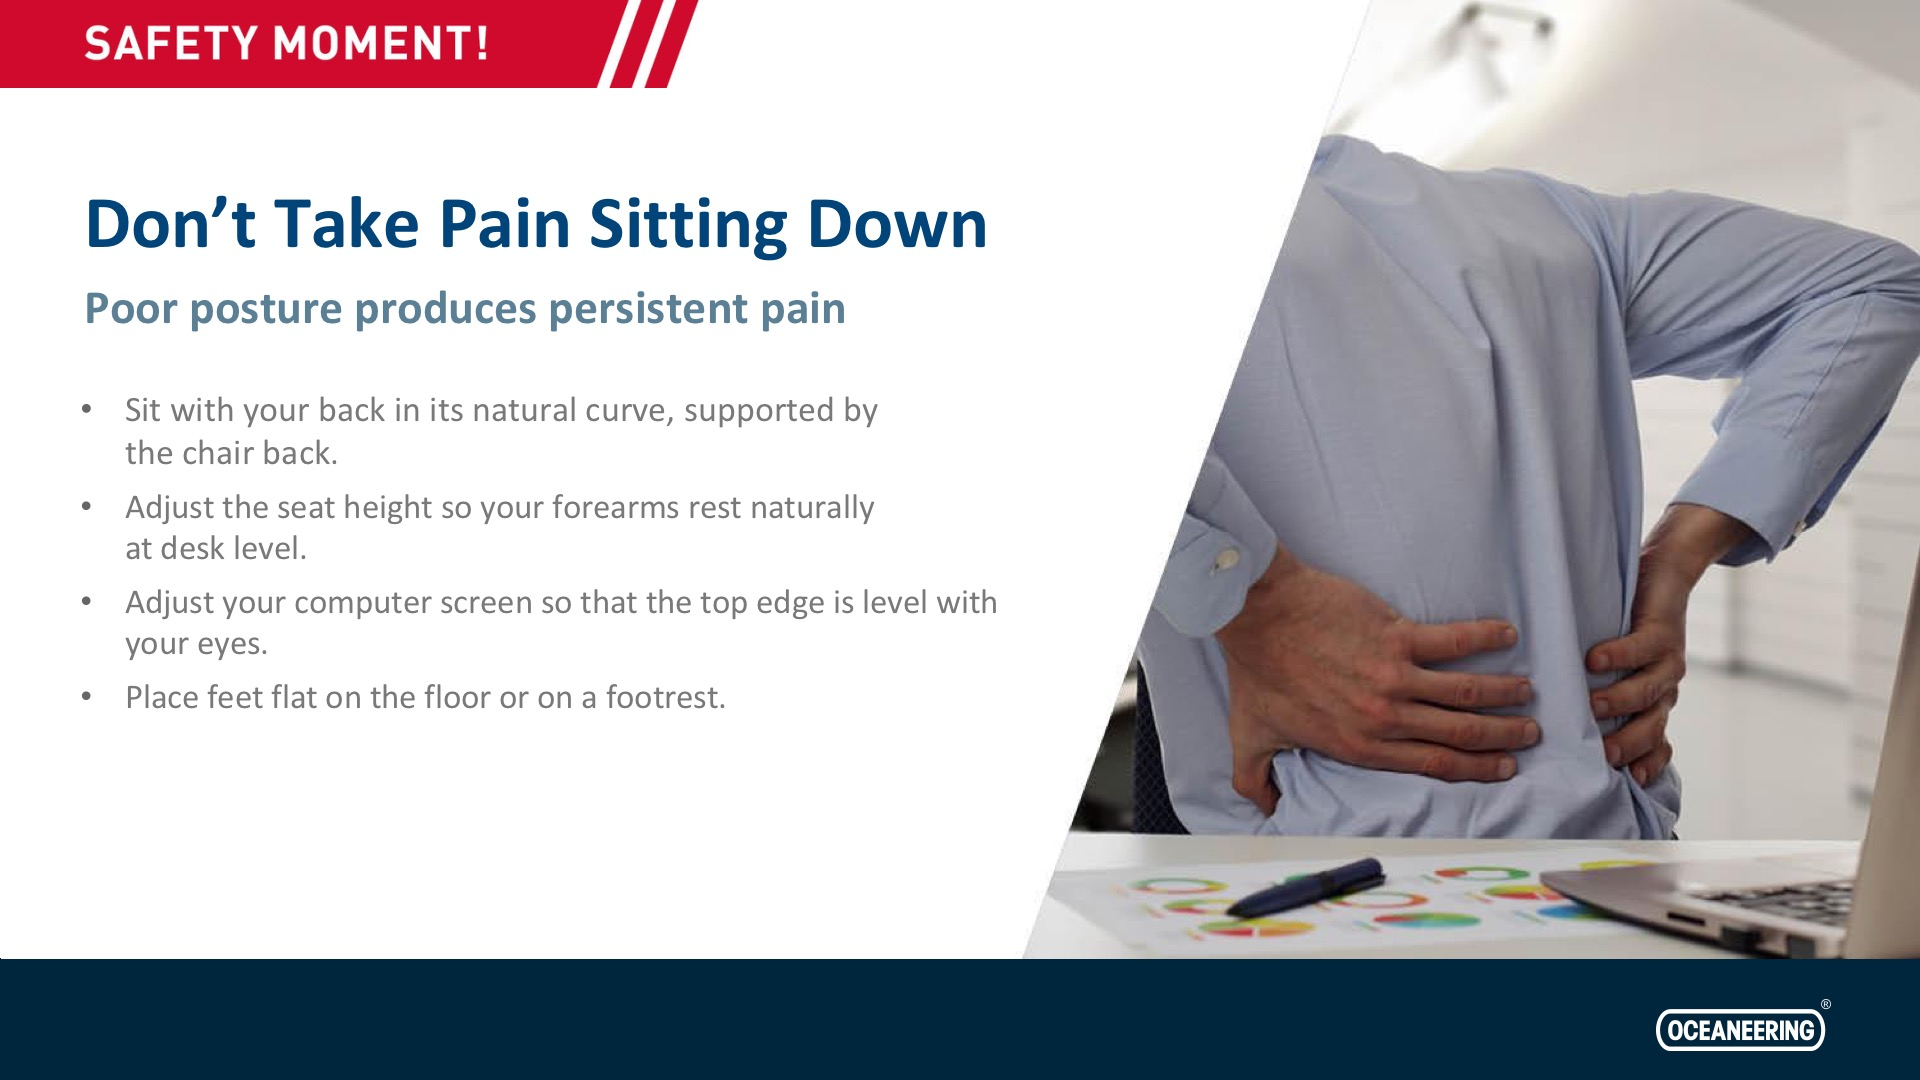 Don't Take Pain Sitting Down